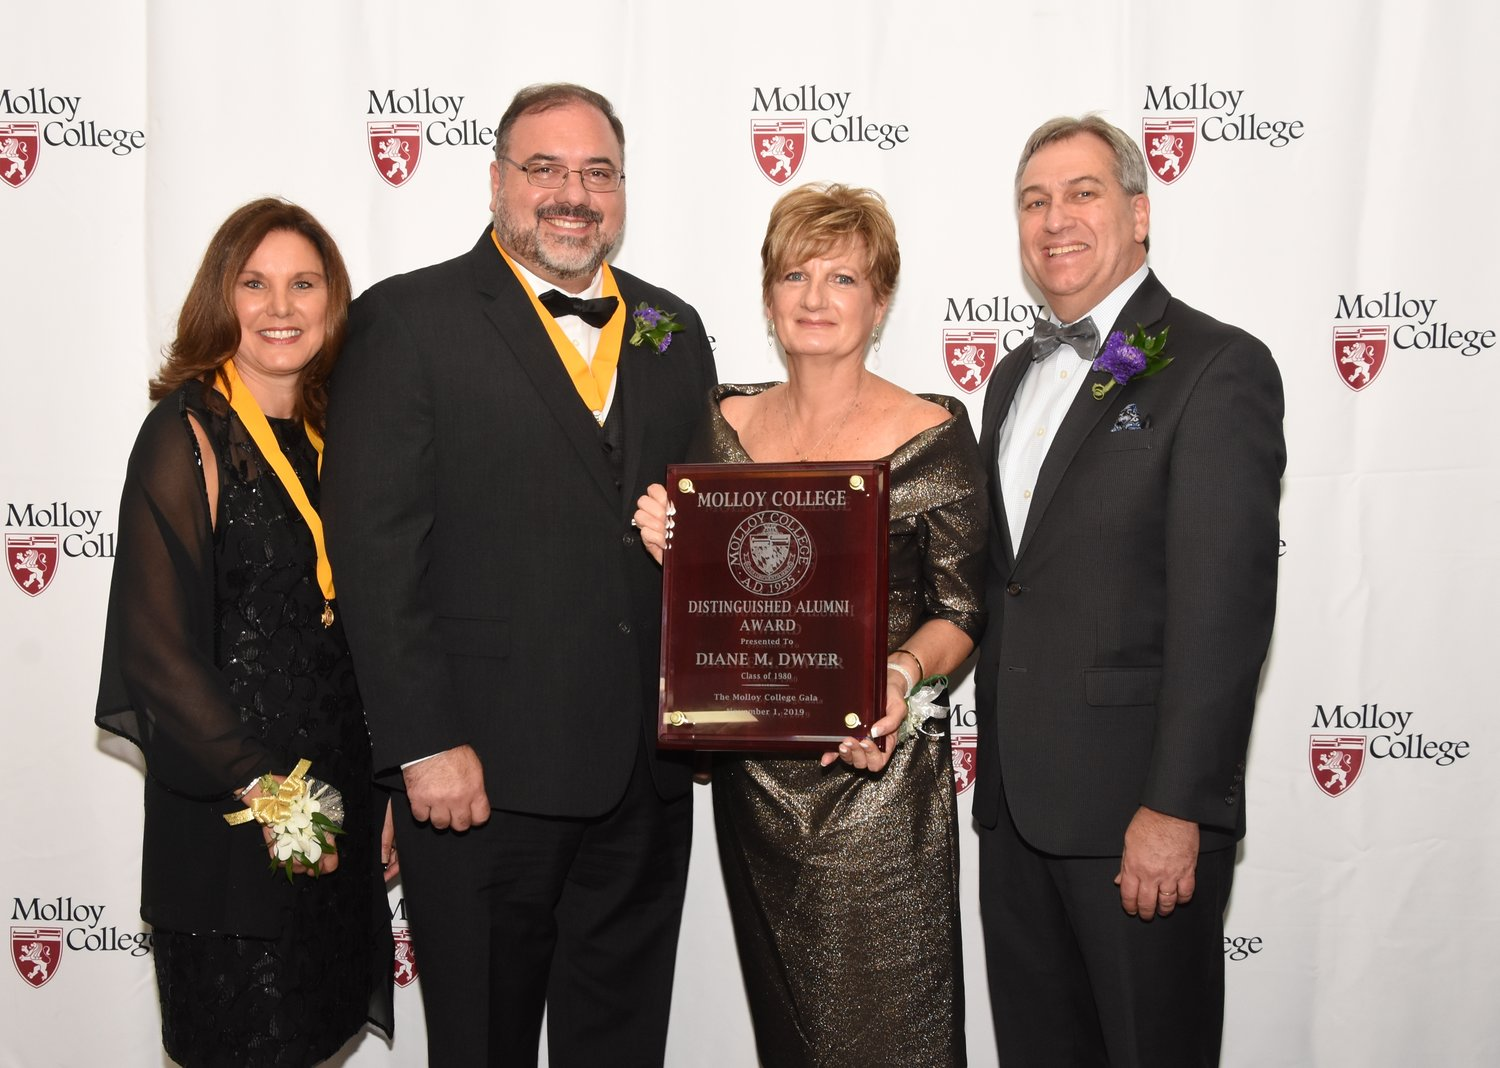 Distinguished Alumni Award winner Diane M. Dwyer with, from left, event co-chairs Laura Farahani and Salvatore Ciampo and Dr. Drew Bogner, president of Molloy College.